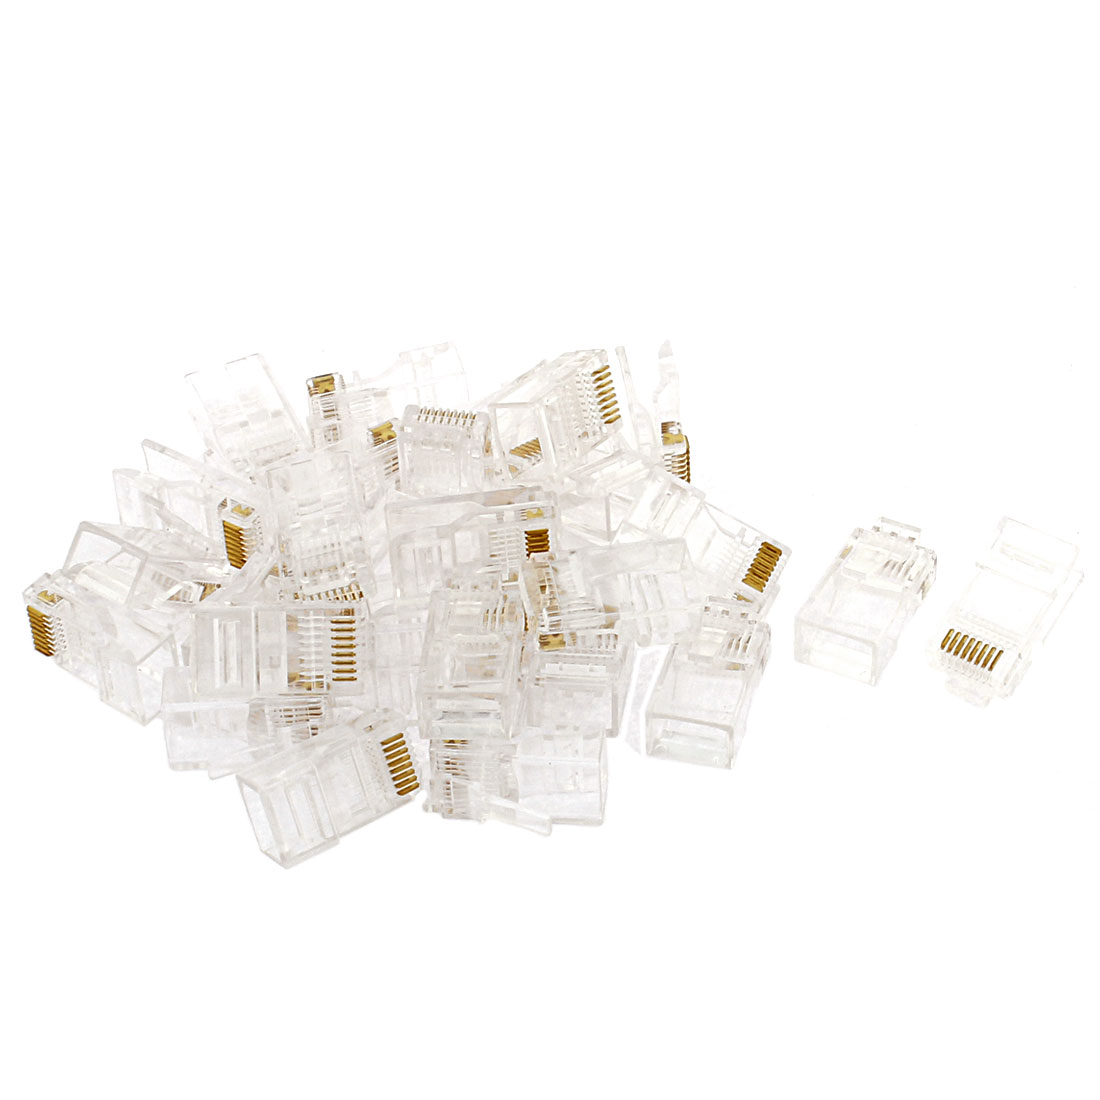 30 Pcs RJ45 8P8C Network Cable CAT 5E Shielded Modular Jack Connector Clear